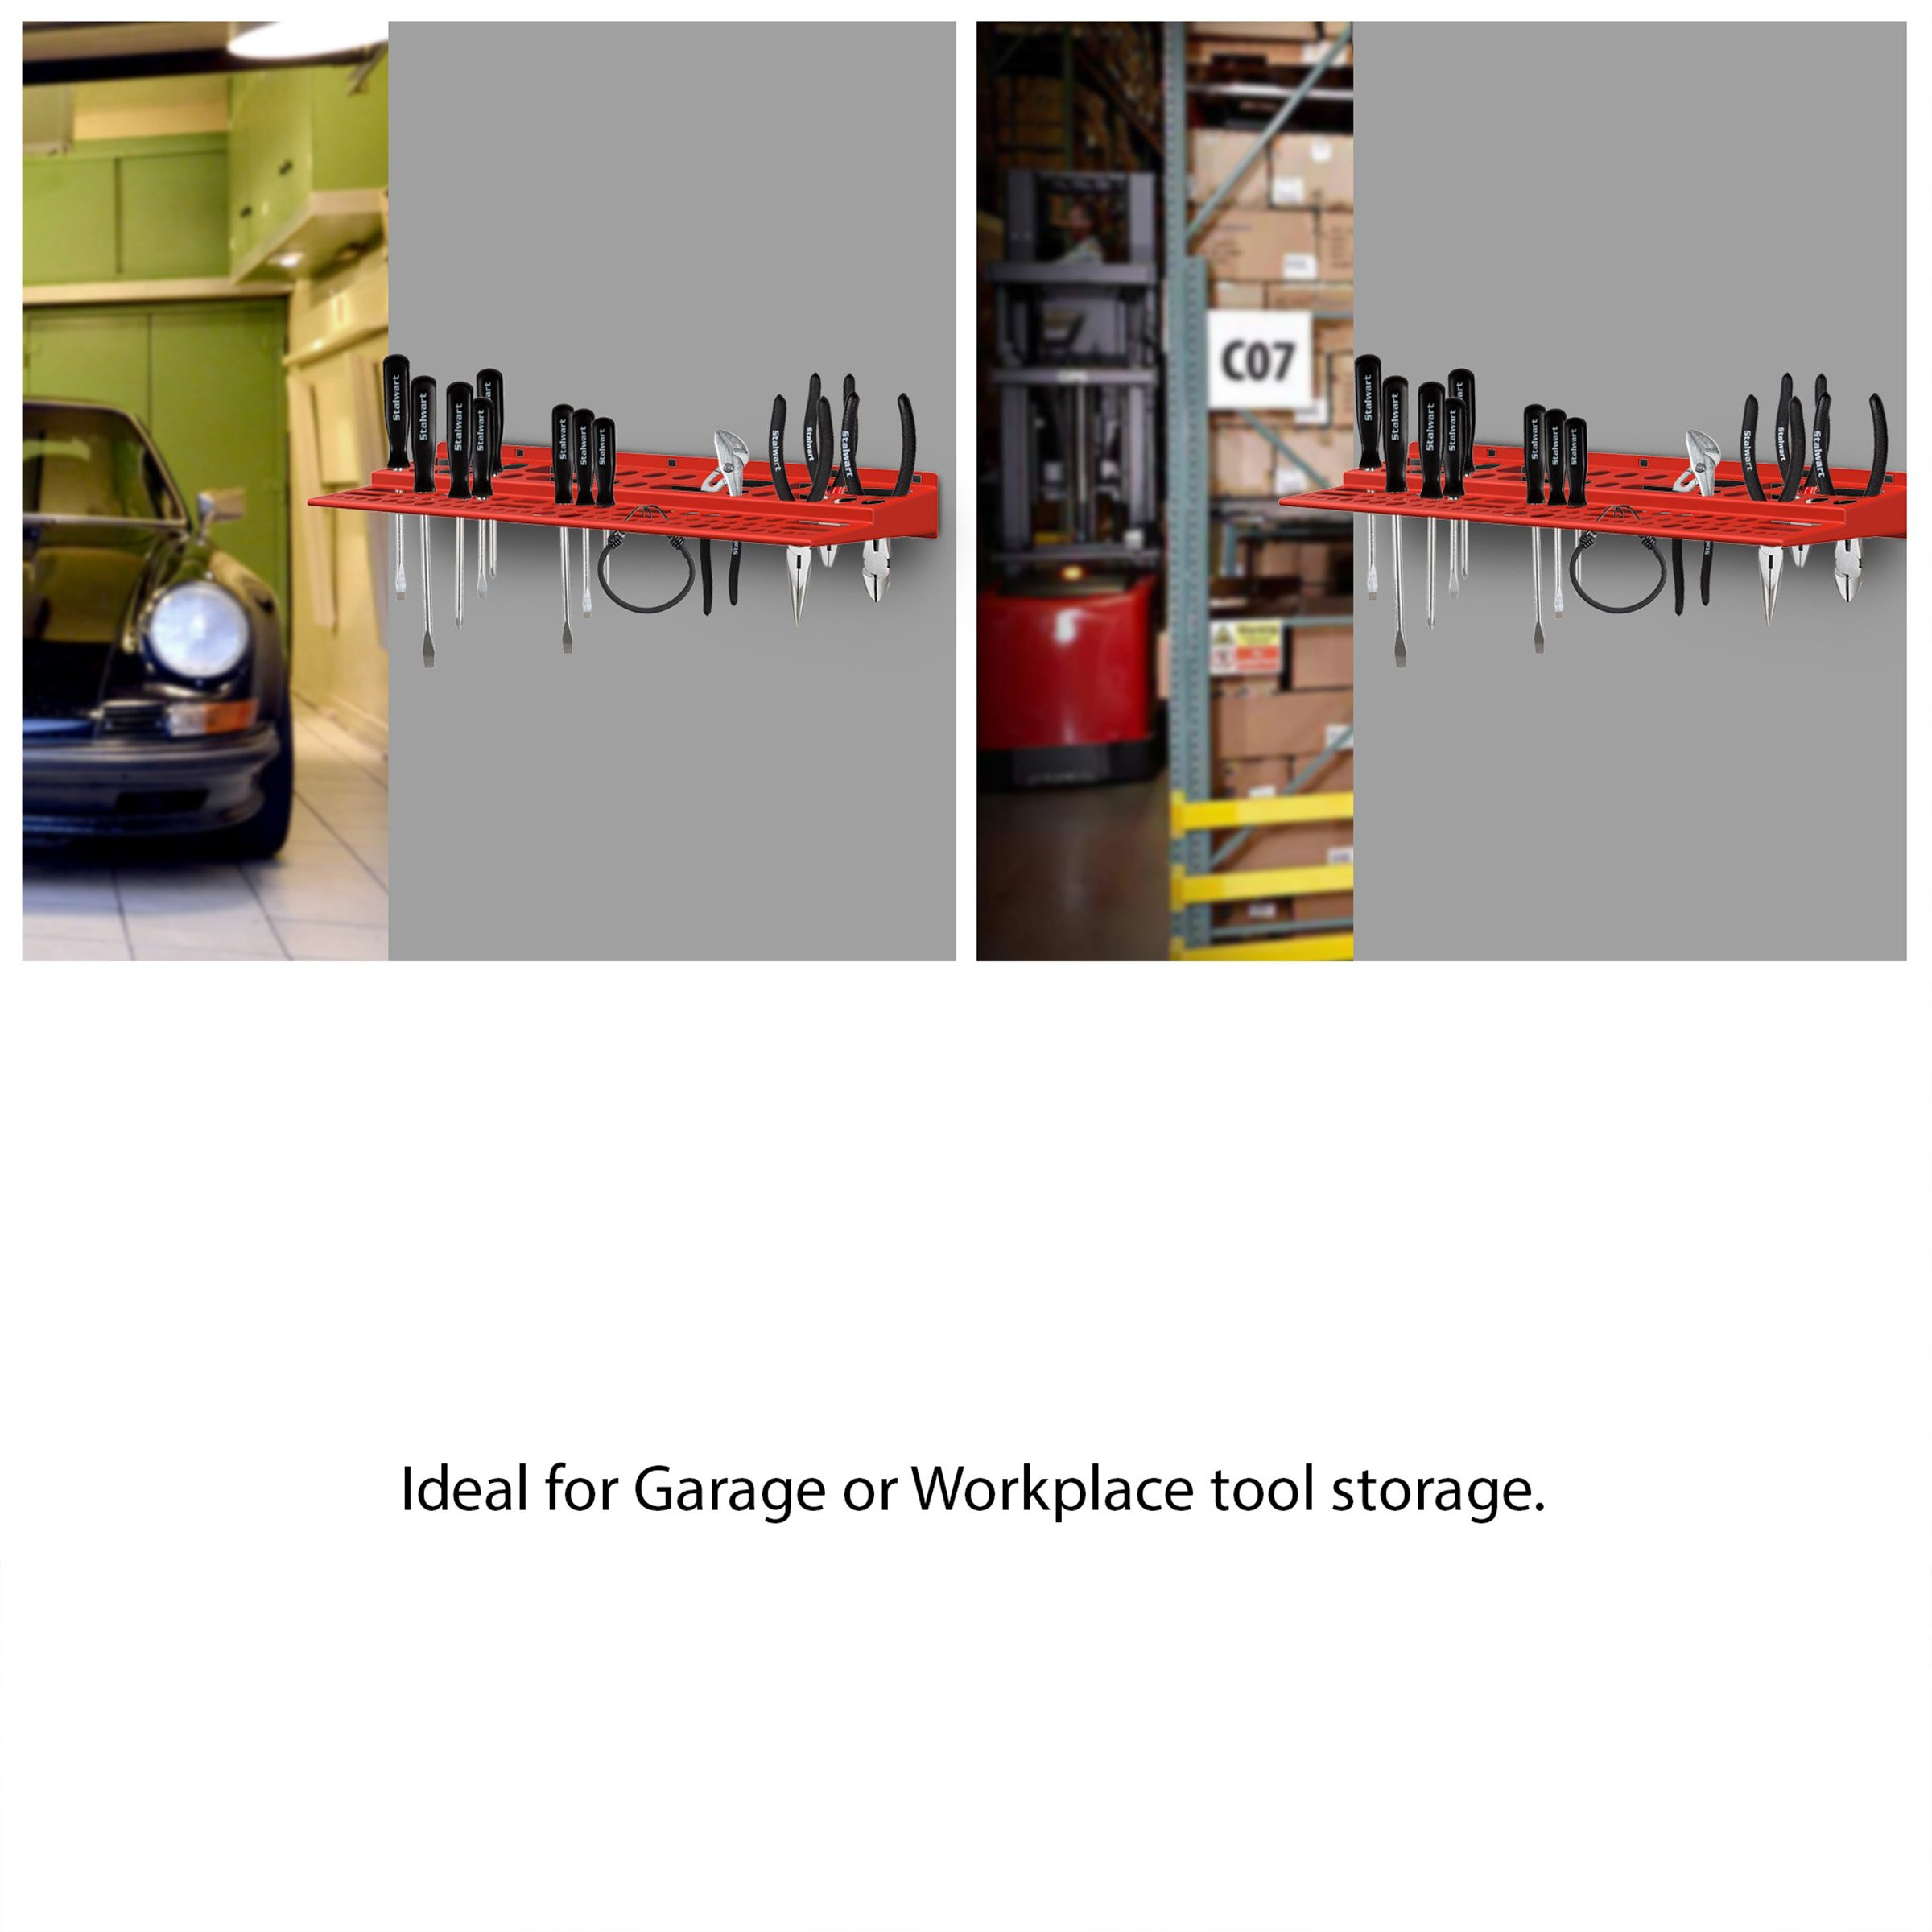 Mountable Tool Storage Shelf for Garage, Shed or Work Shop Organization- Wall Mount Multi Level Organizer Rack, Holds Up To 96 Tools by Stalwart by Stalwart (Image #5)